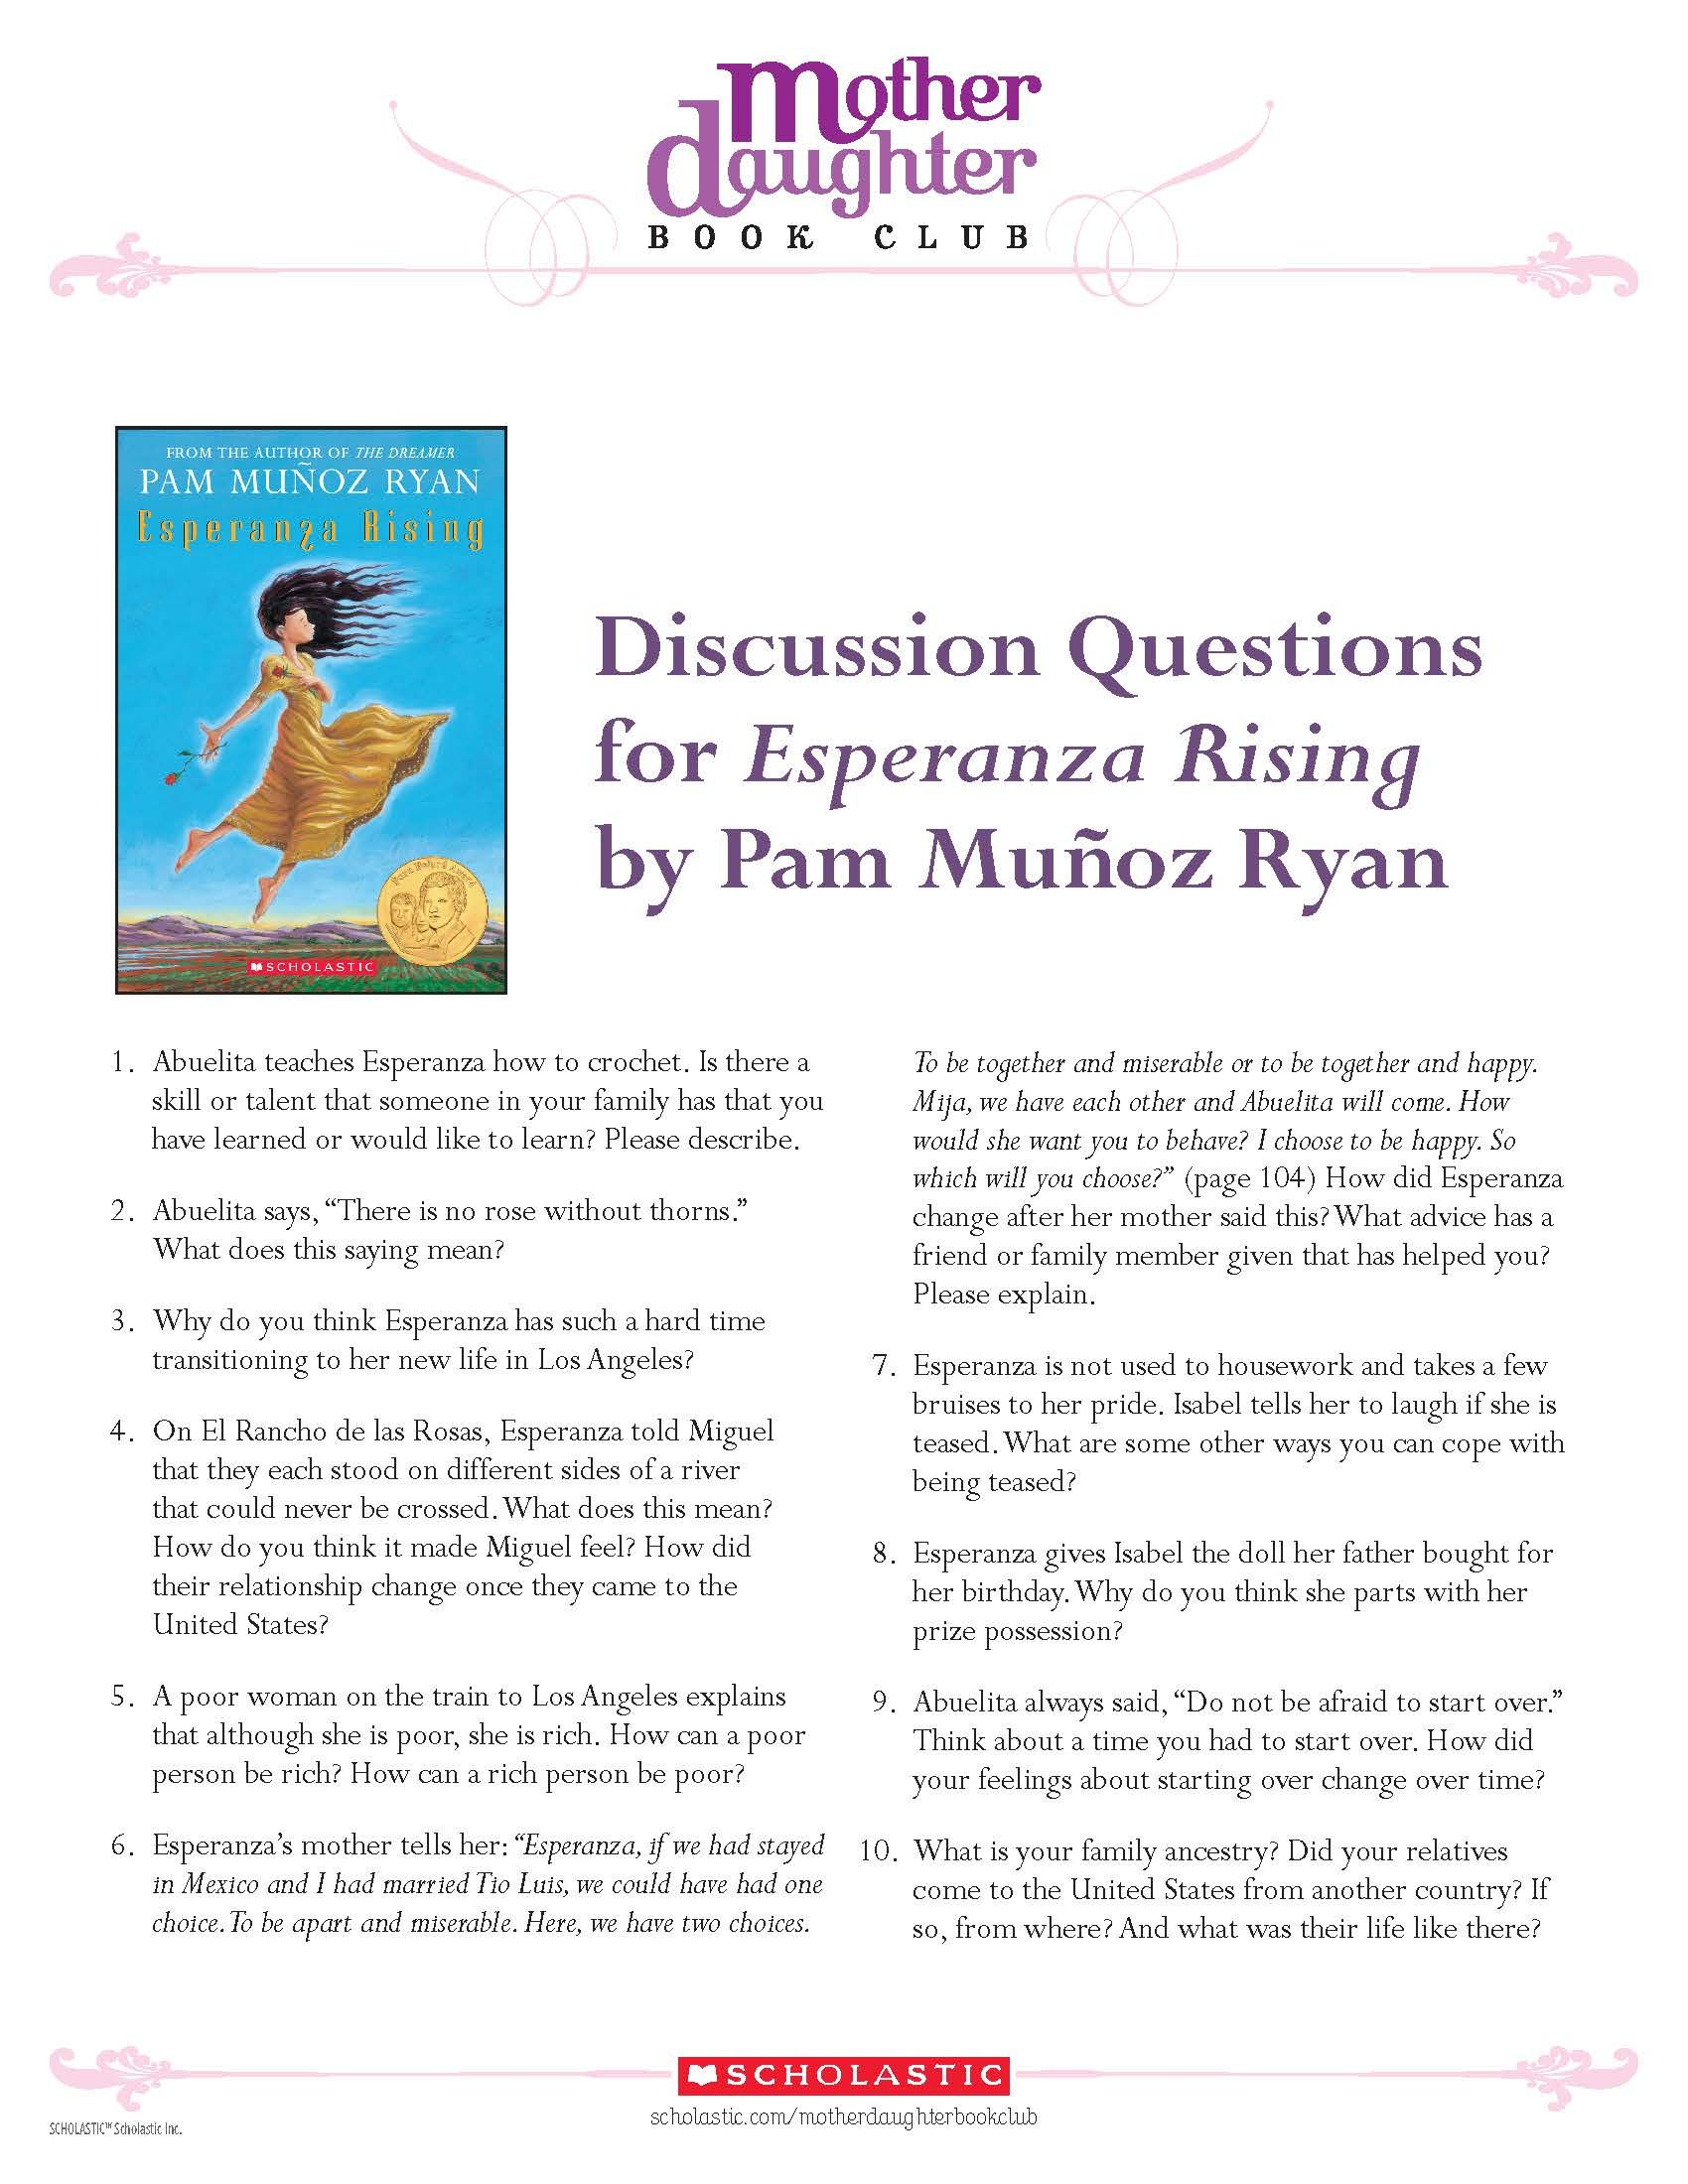 Discussion Questions For Esperanza Rising By Pam Munoz Ryan